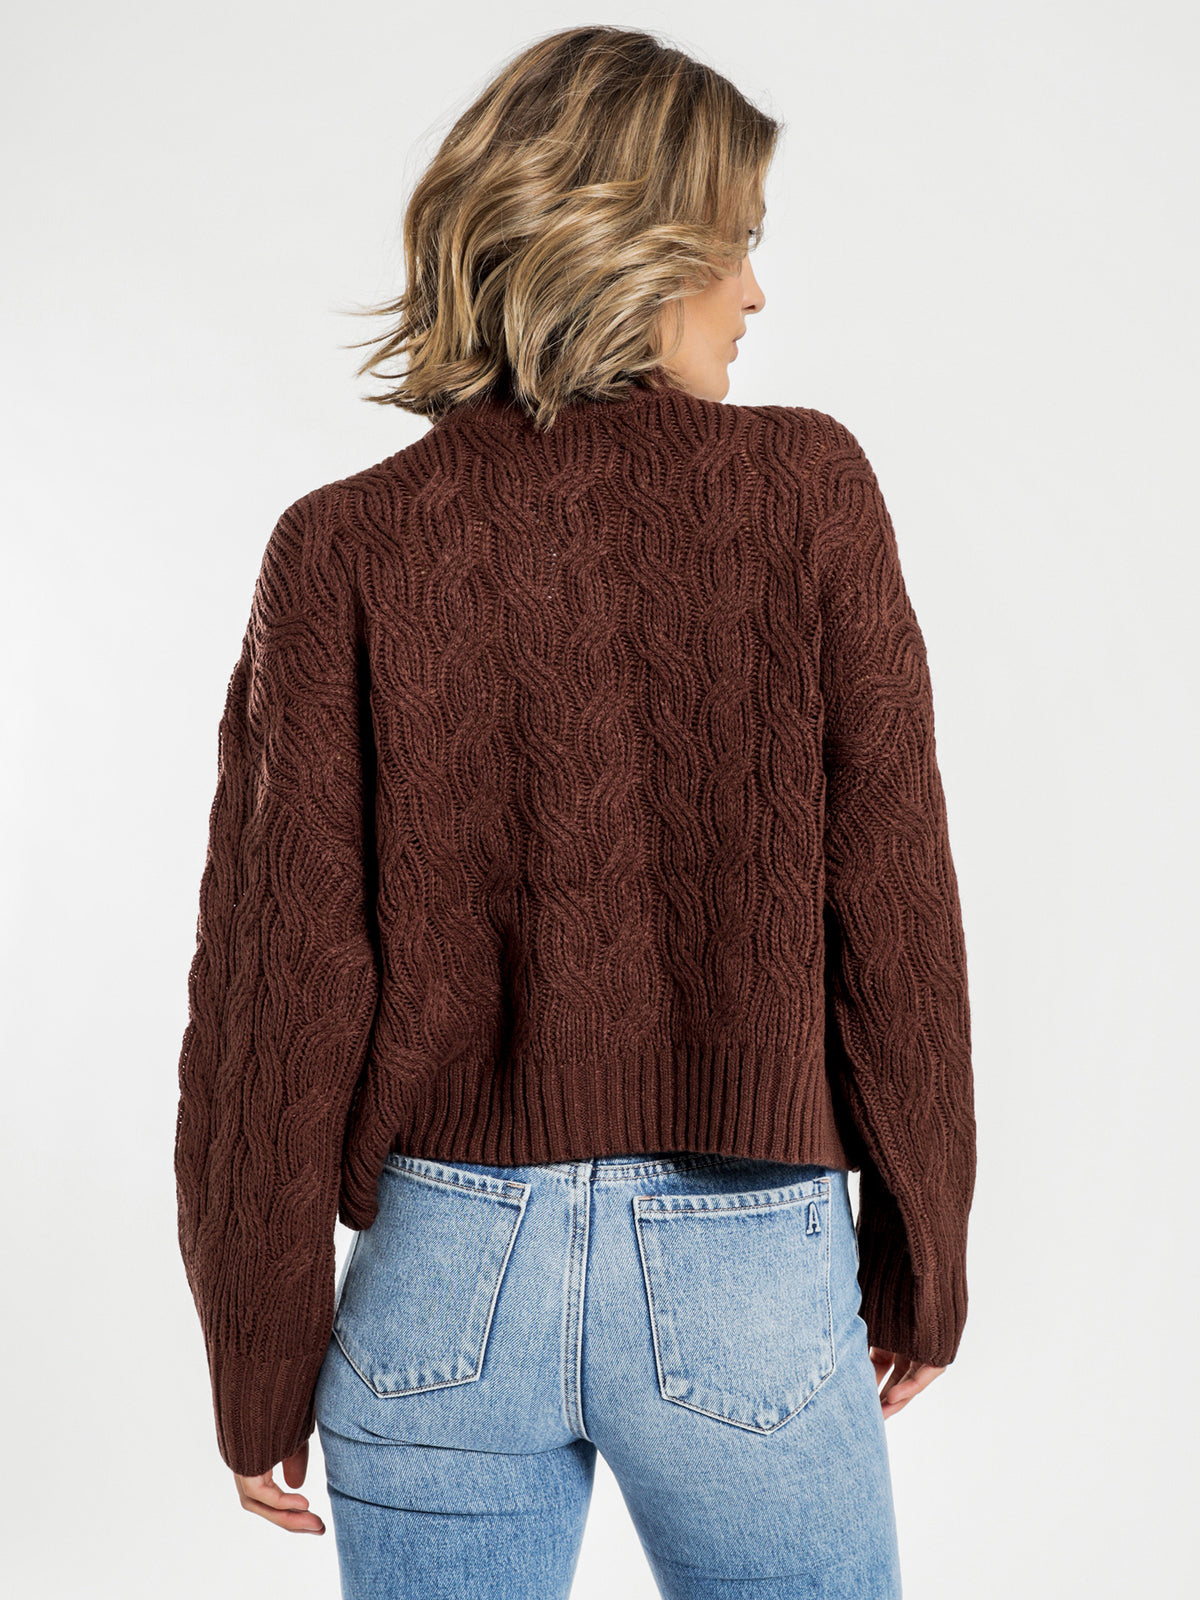 Mahogany Oversized Knit in Chocolate